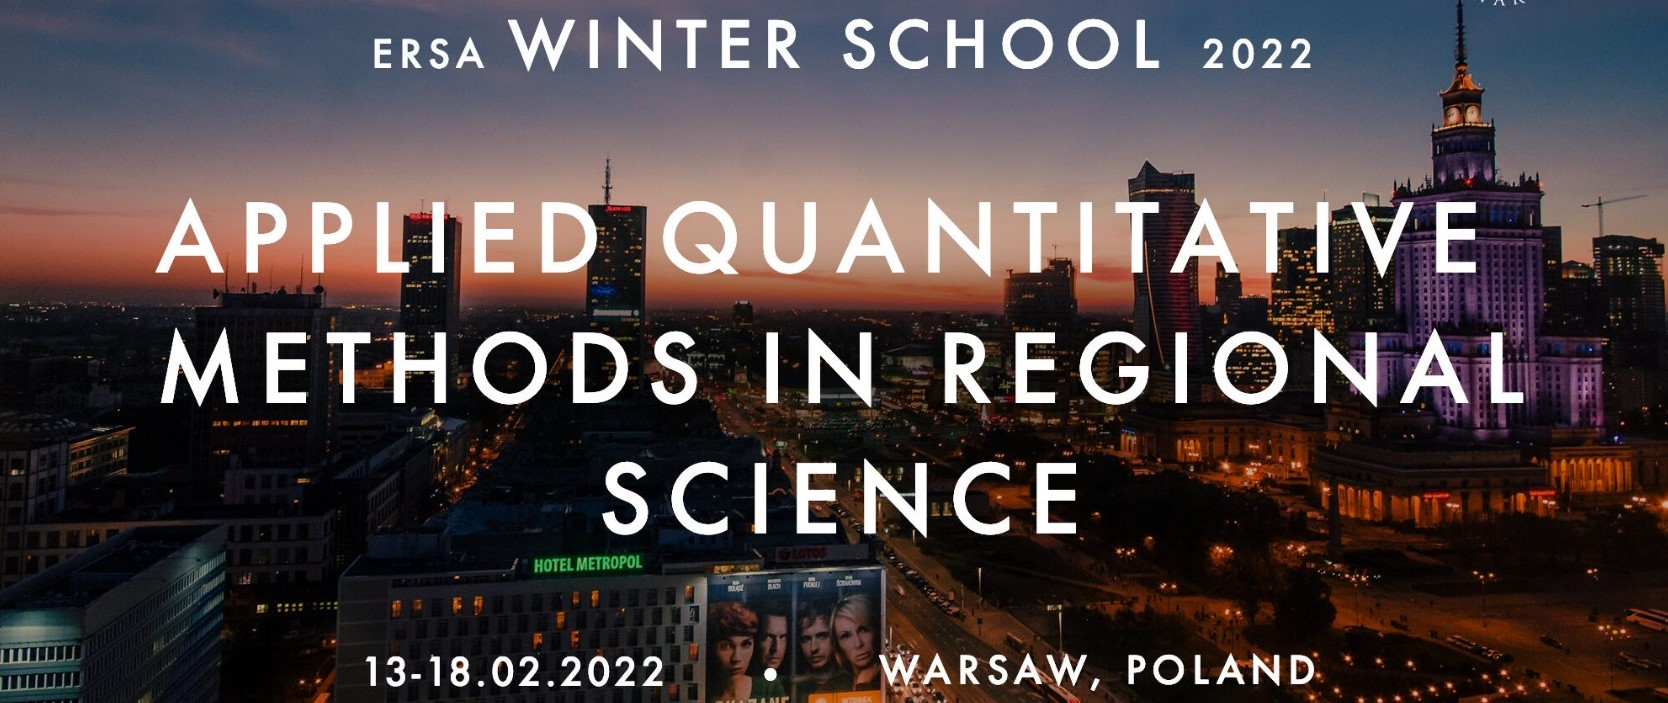 Applications are open for the ERSA Winter School 2022